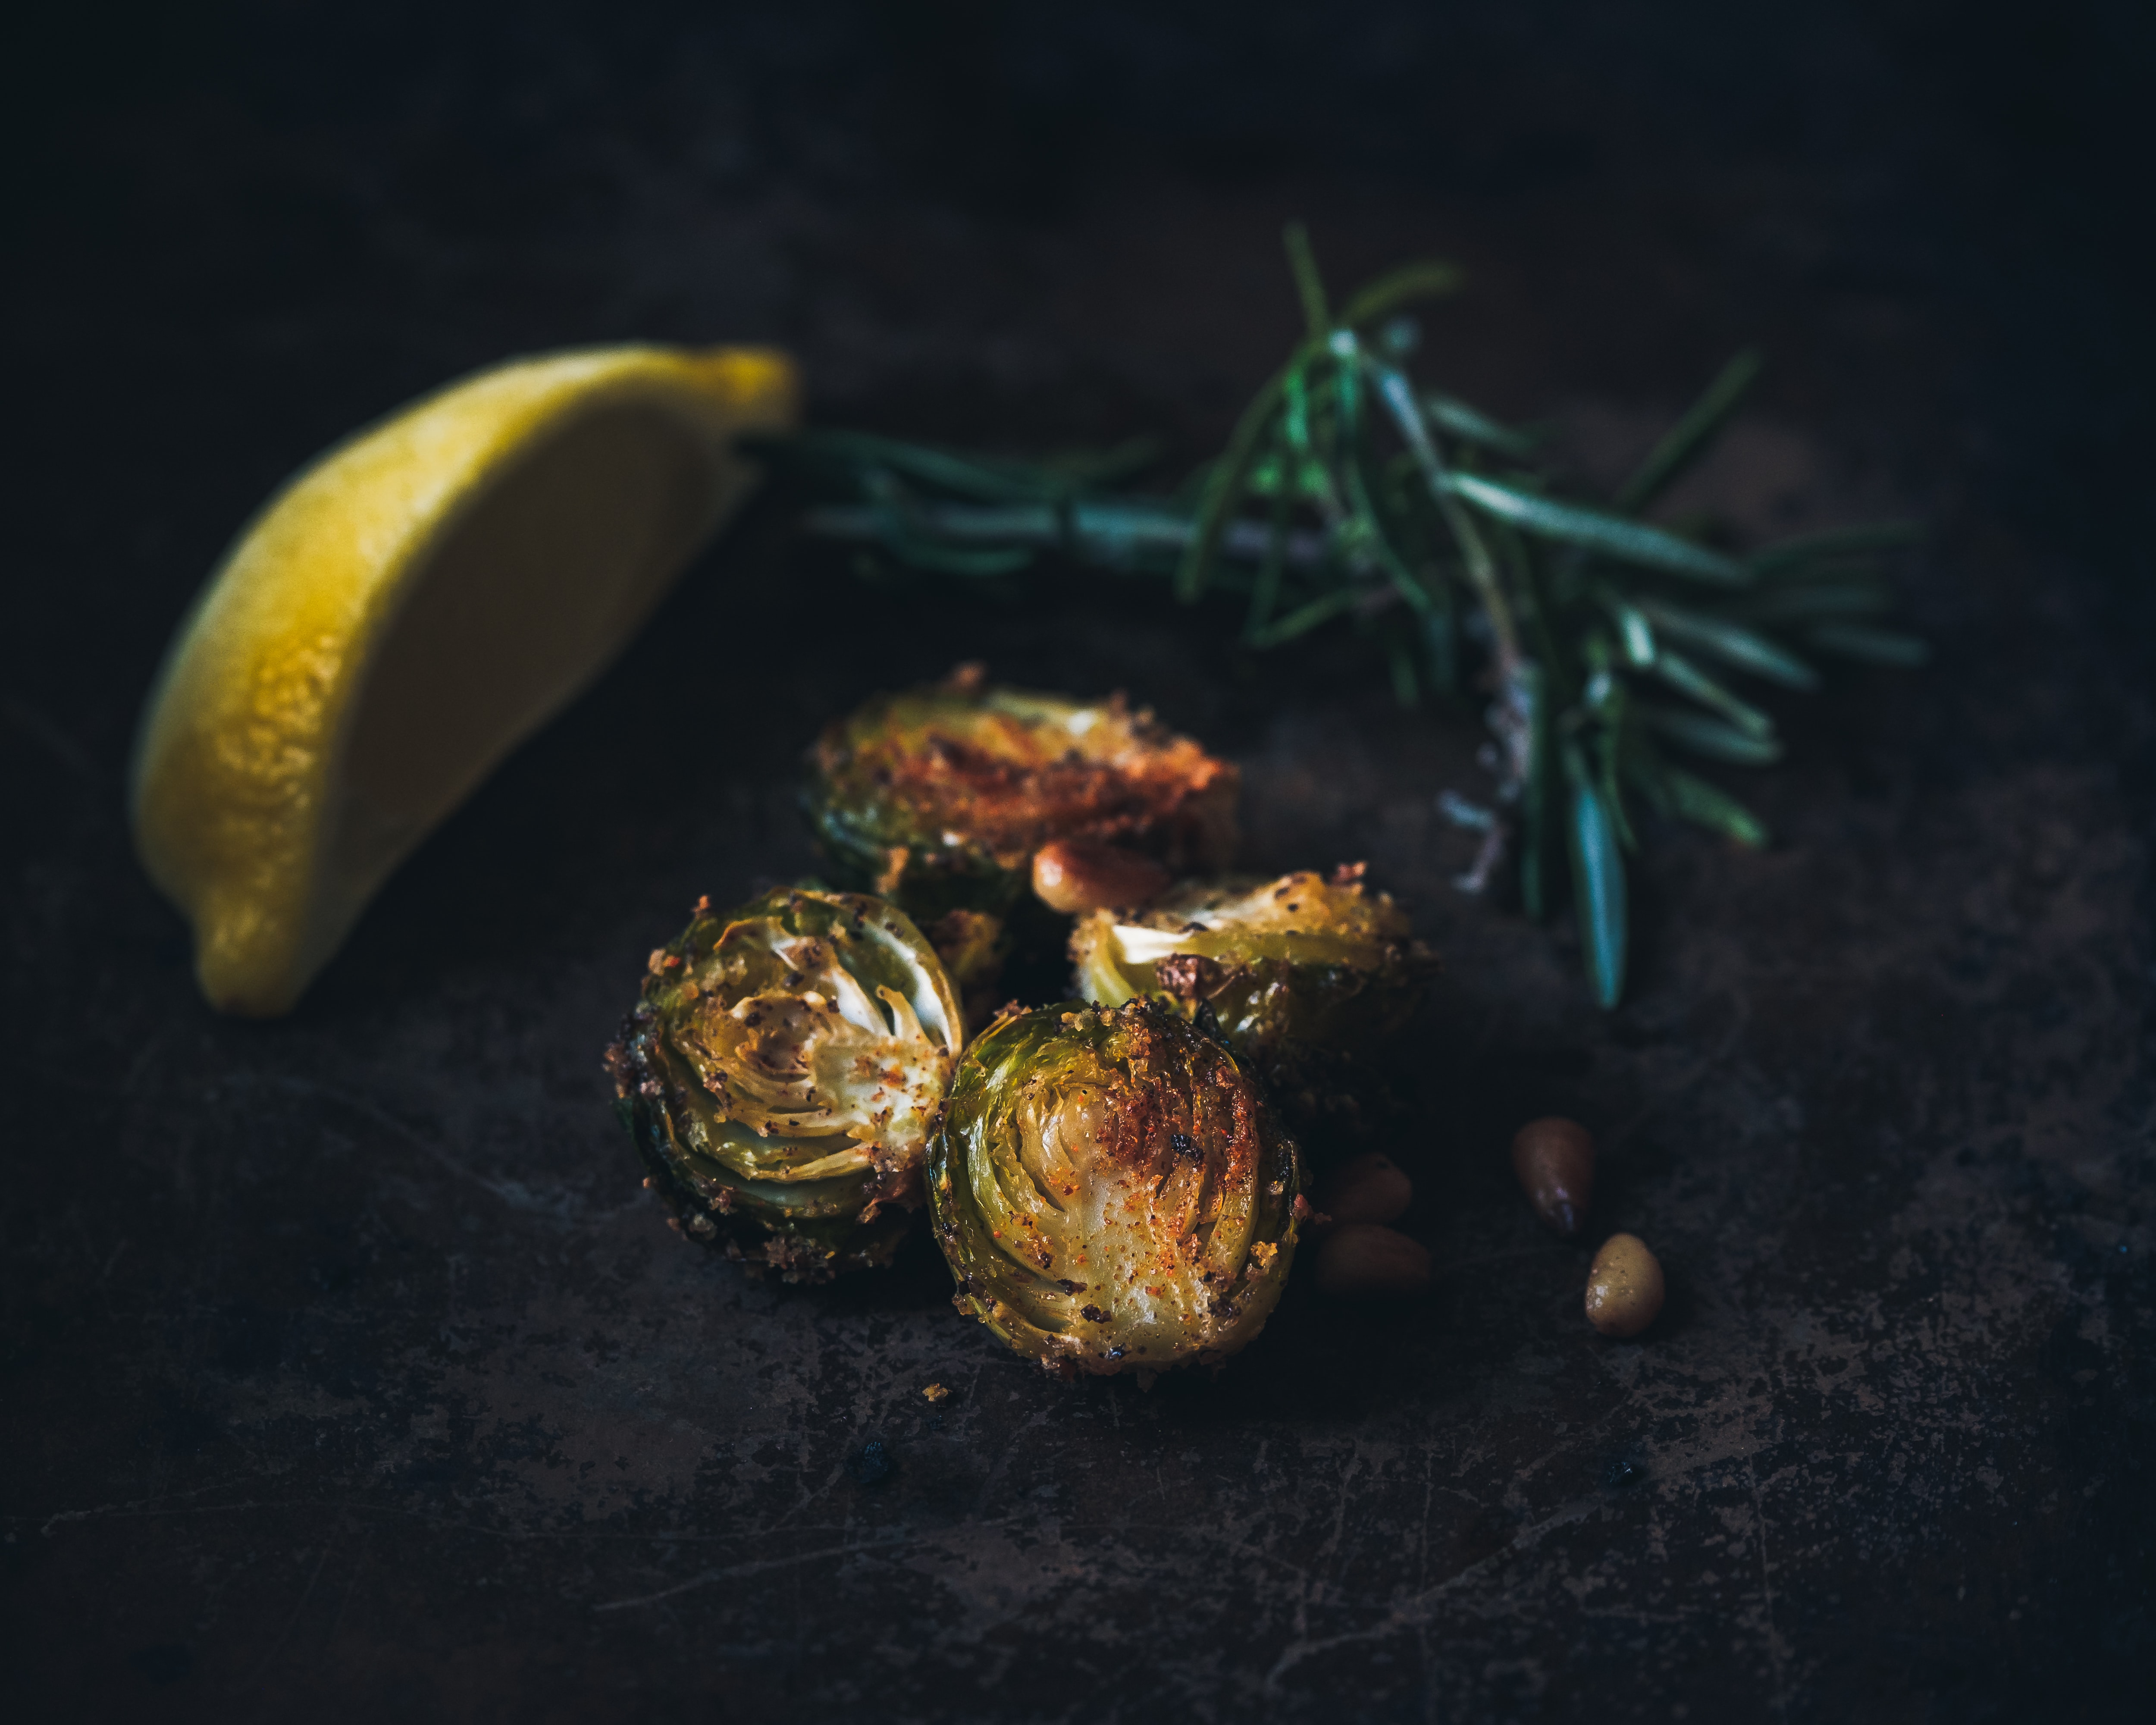 selective focus photography of grilled Brussels sprout, lemon wedge, and rosemary sprig